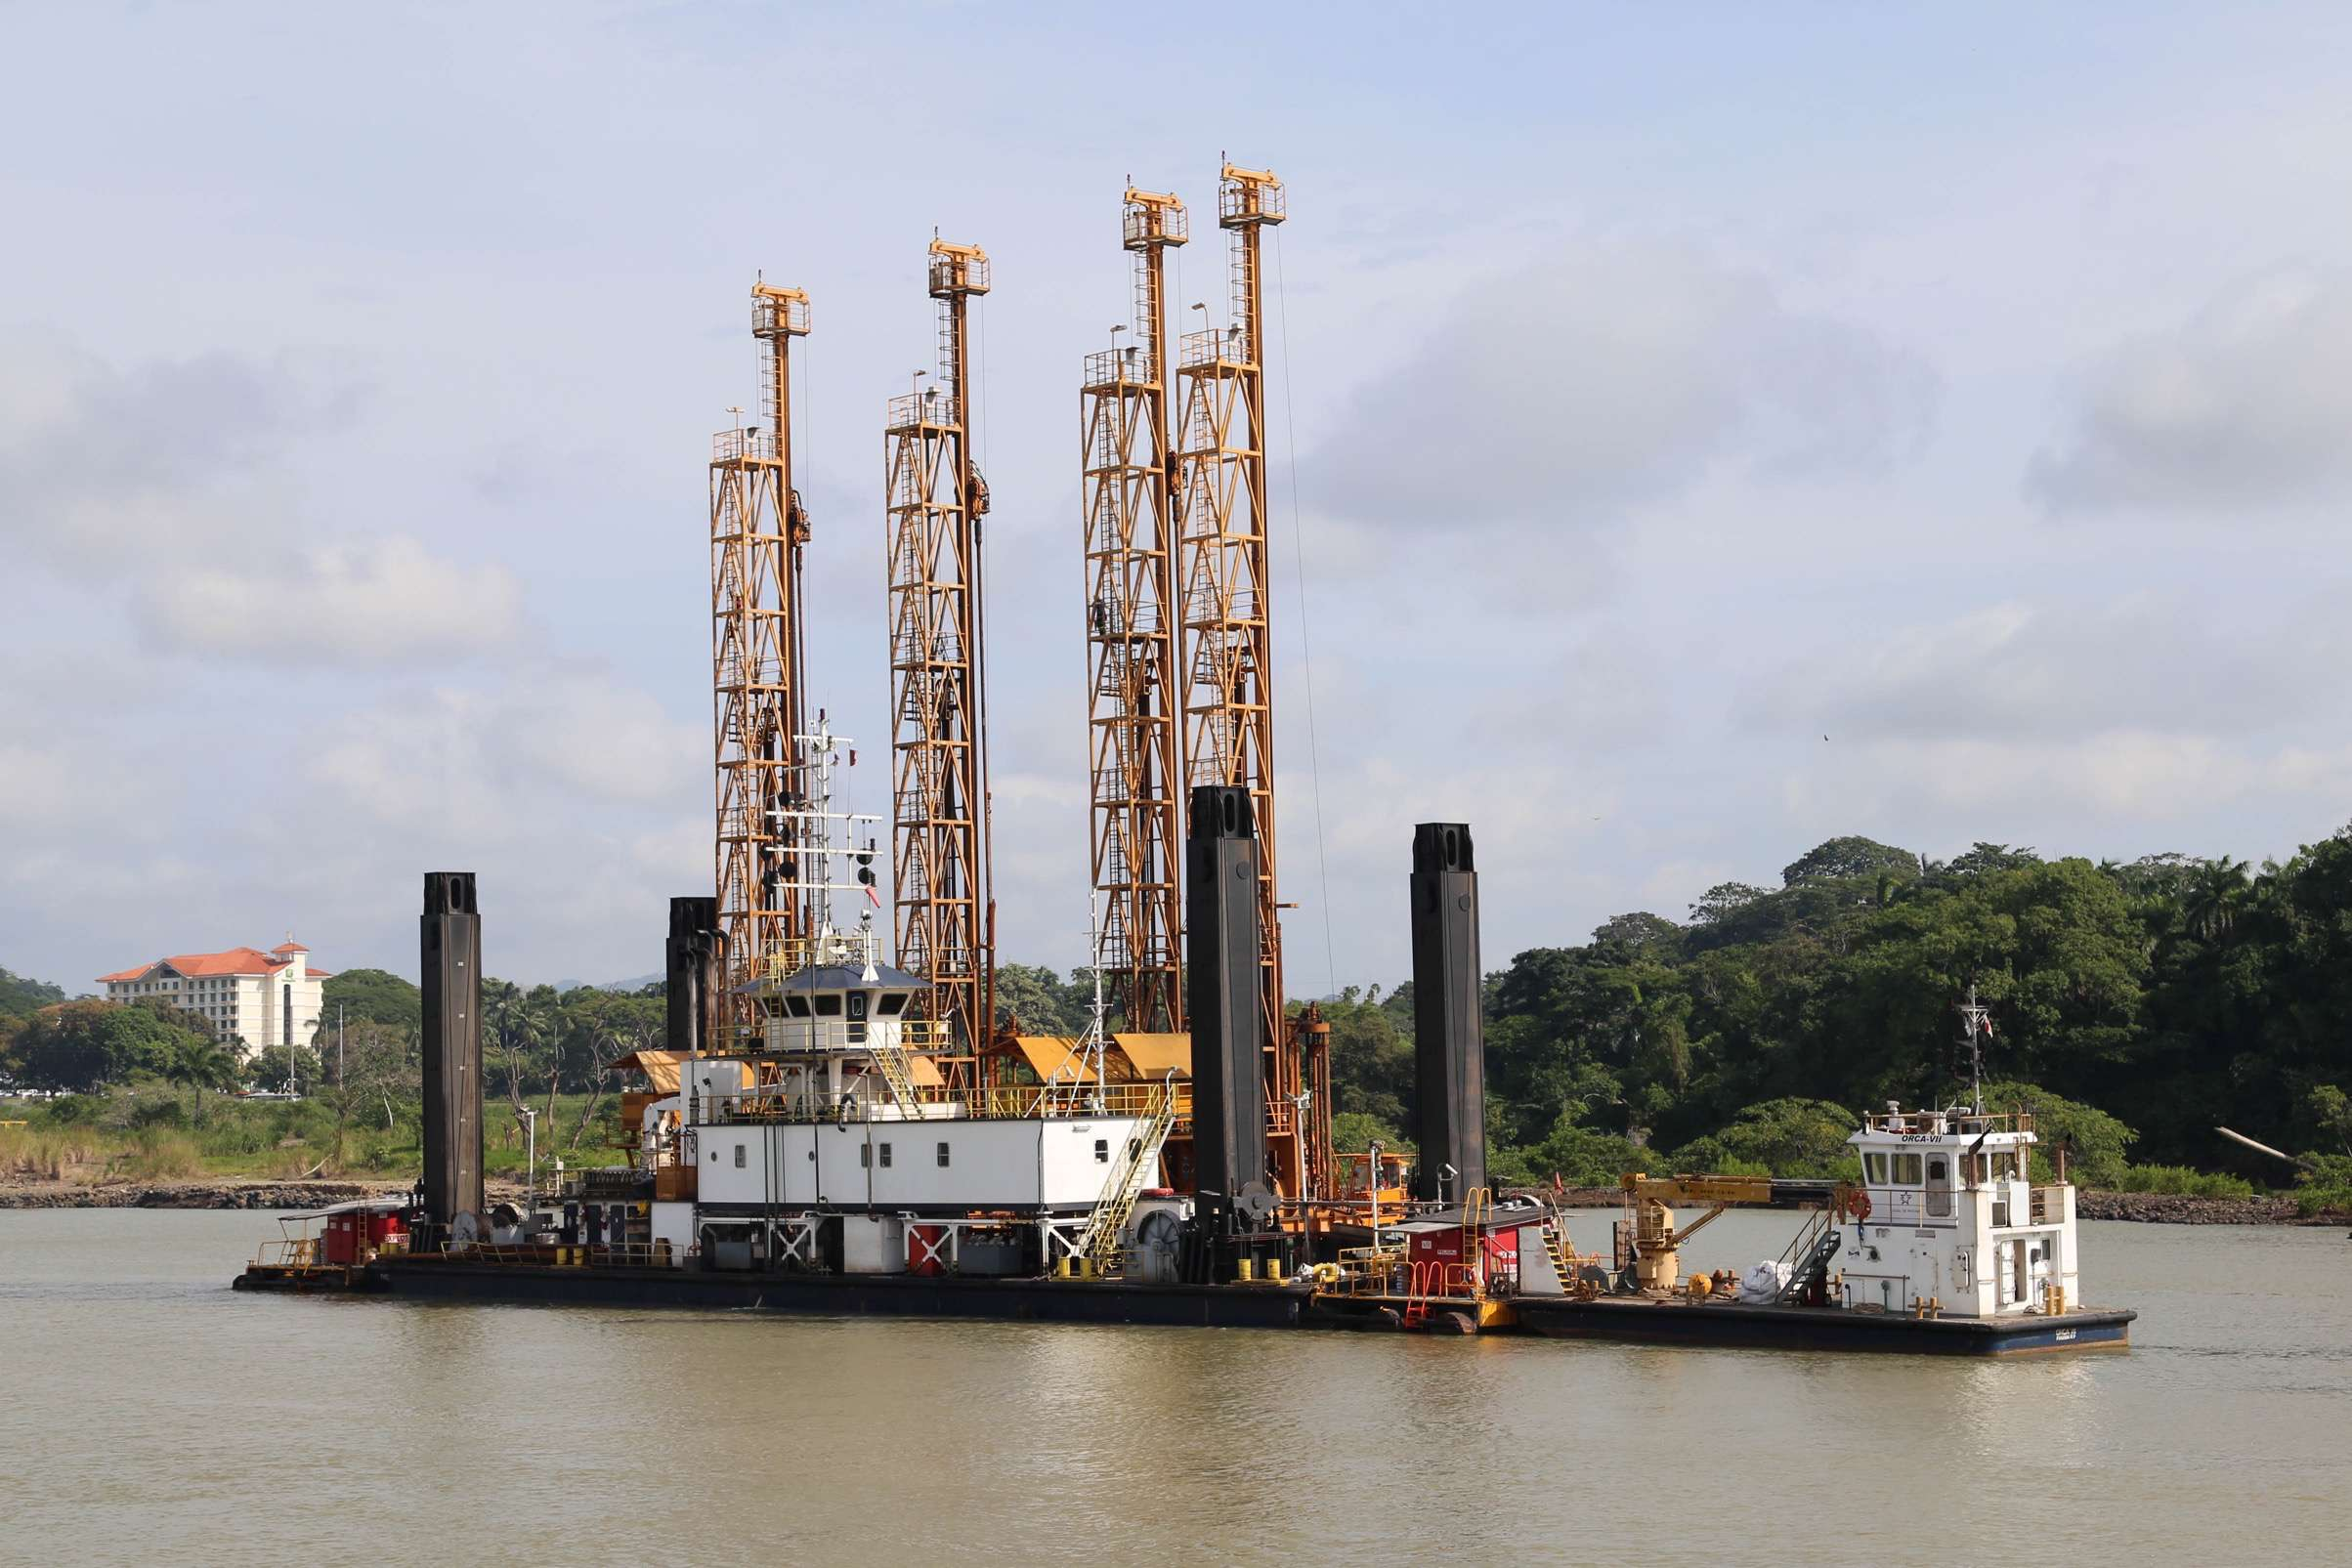 Dredging, core sampling and expansion work continues around the clock at the Panama Canal.